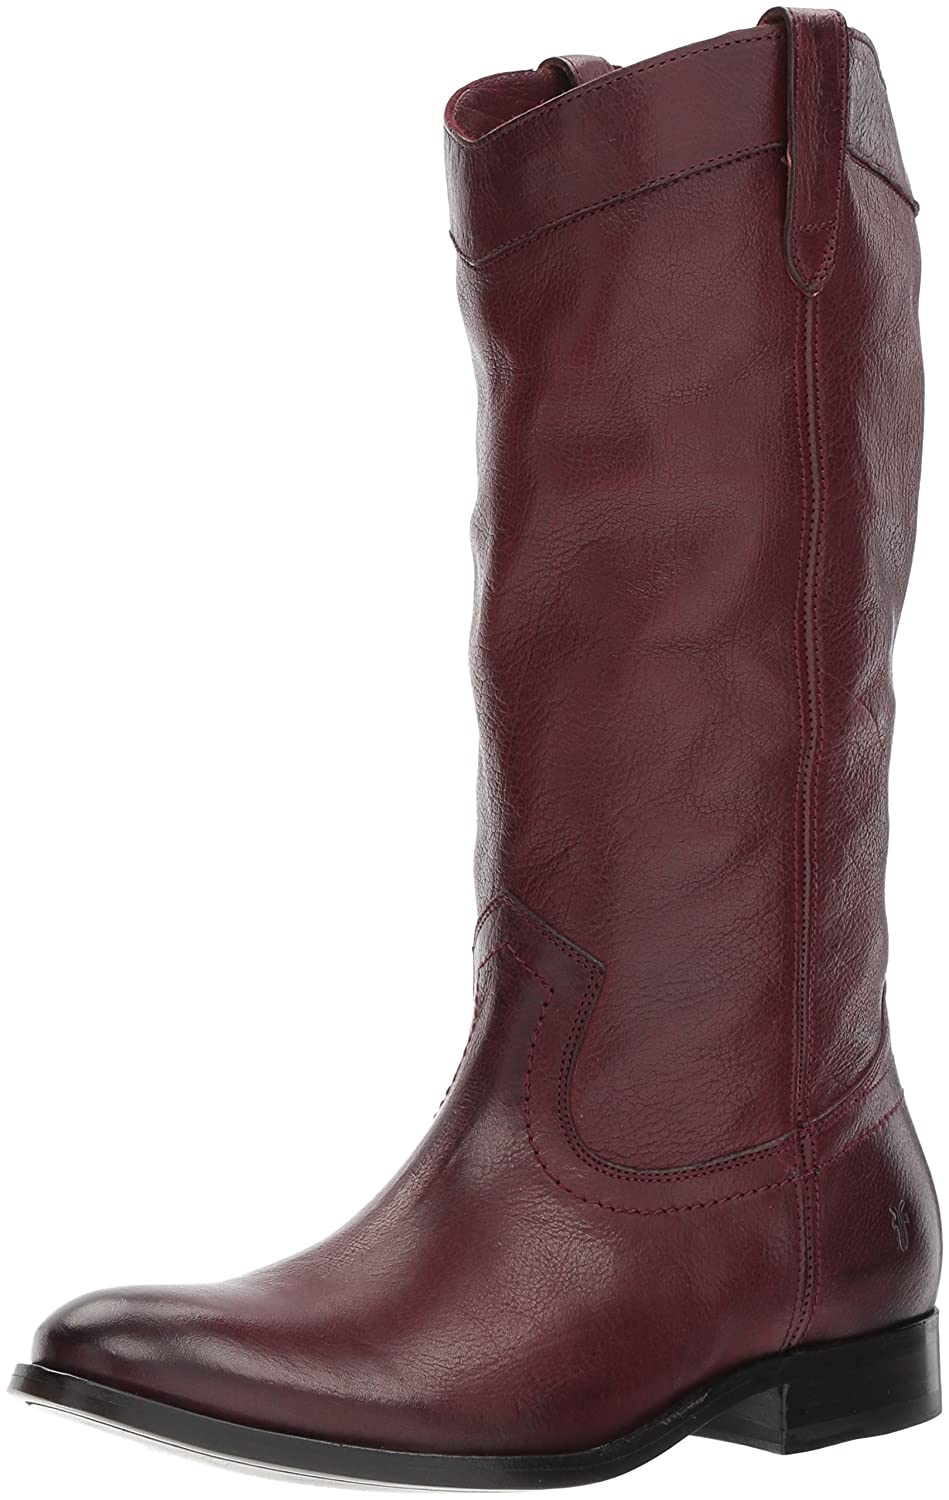 FRYE Women's Melissa 7 Pull on Fashion Boot B06VSCS73L 7 Melissa B(M) US|Wine 87a1e7